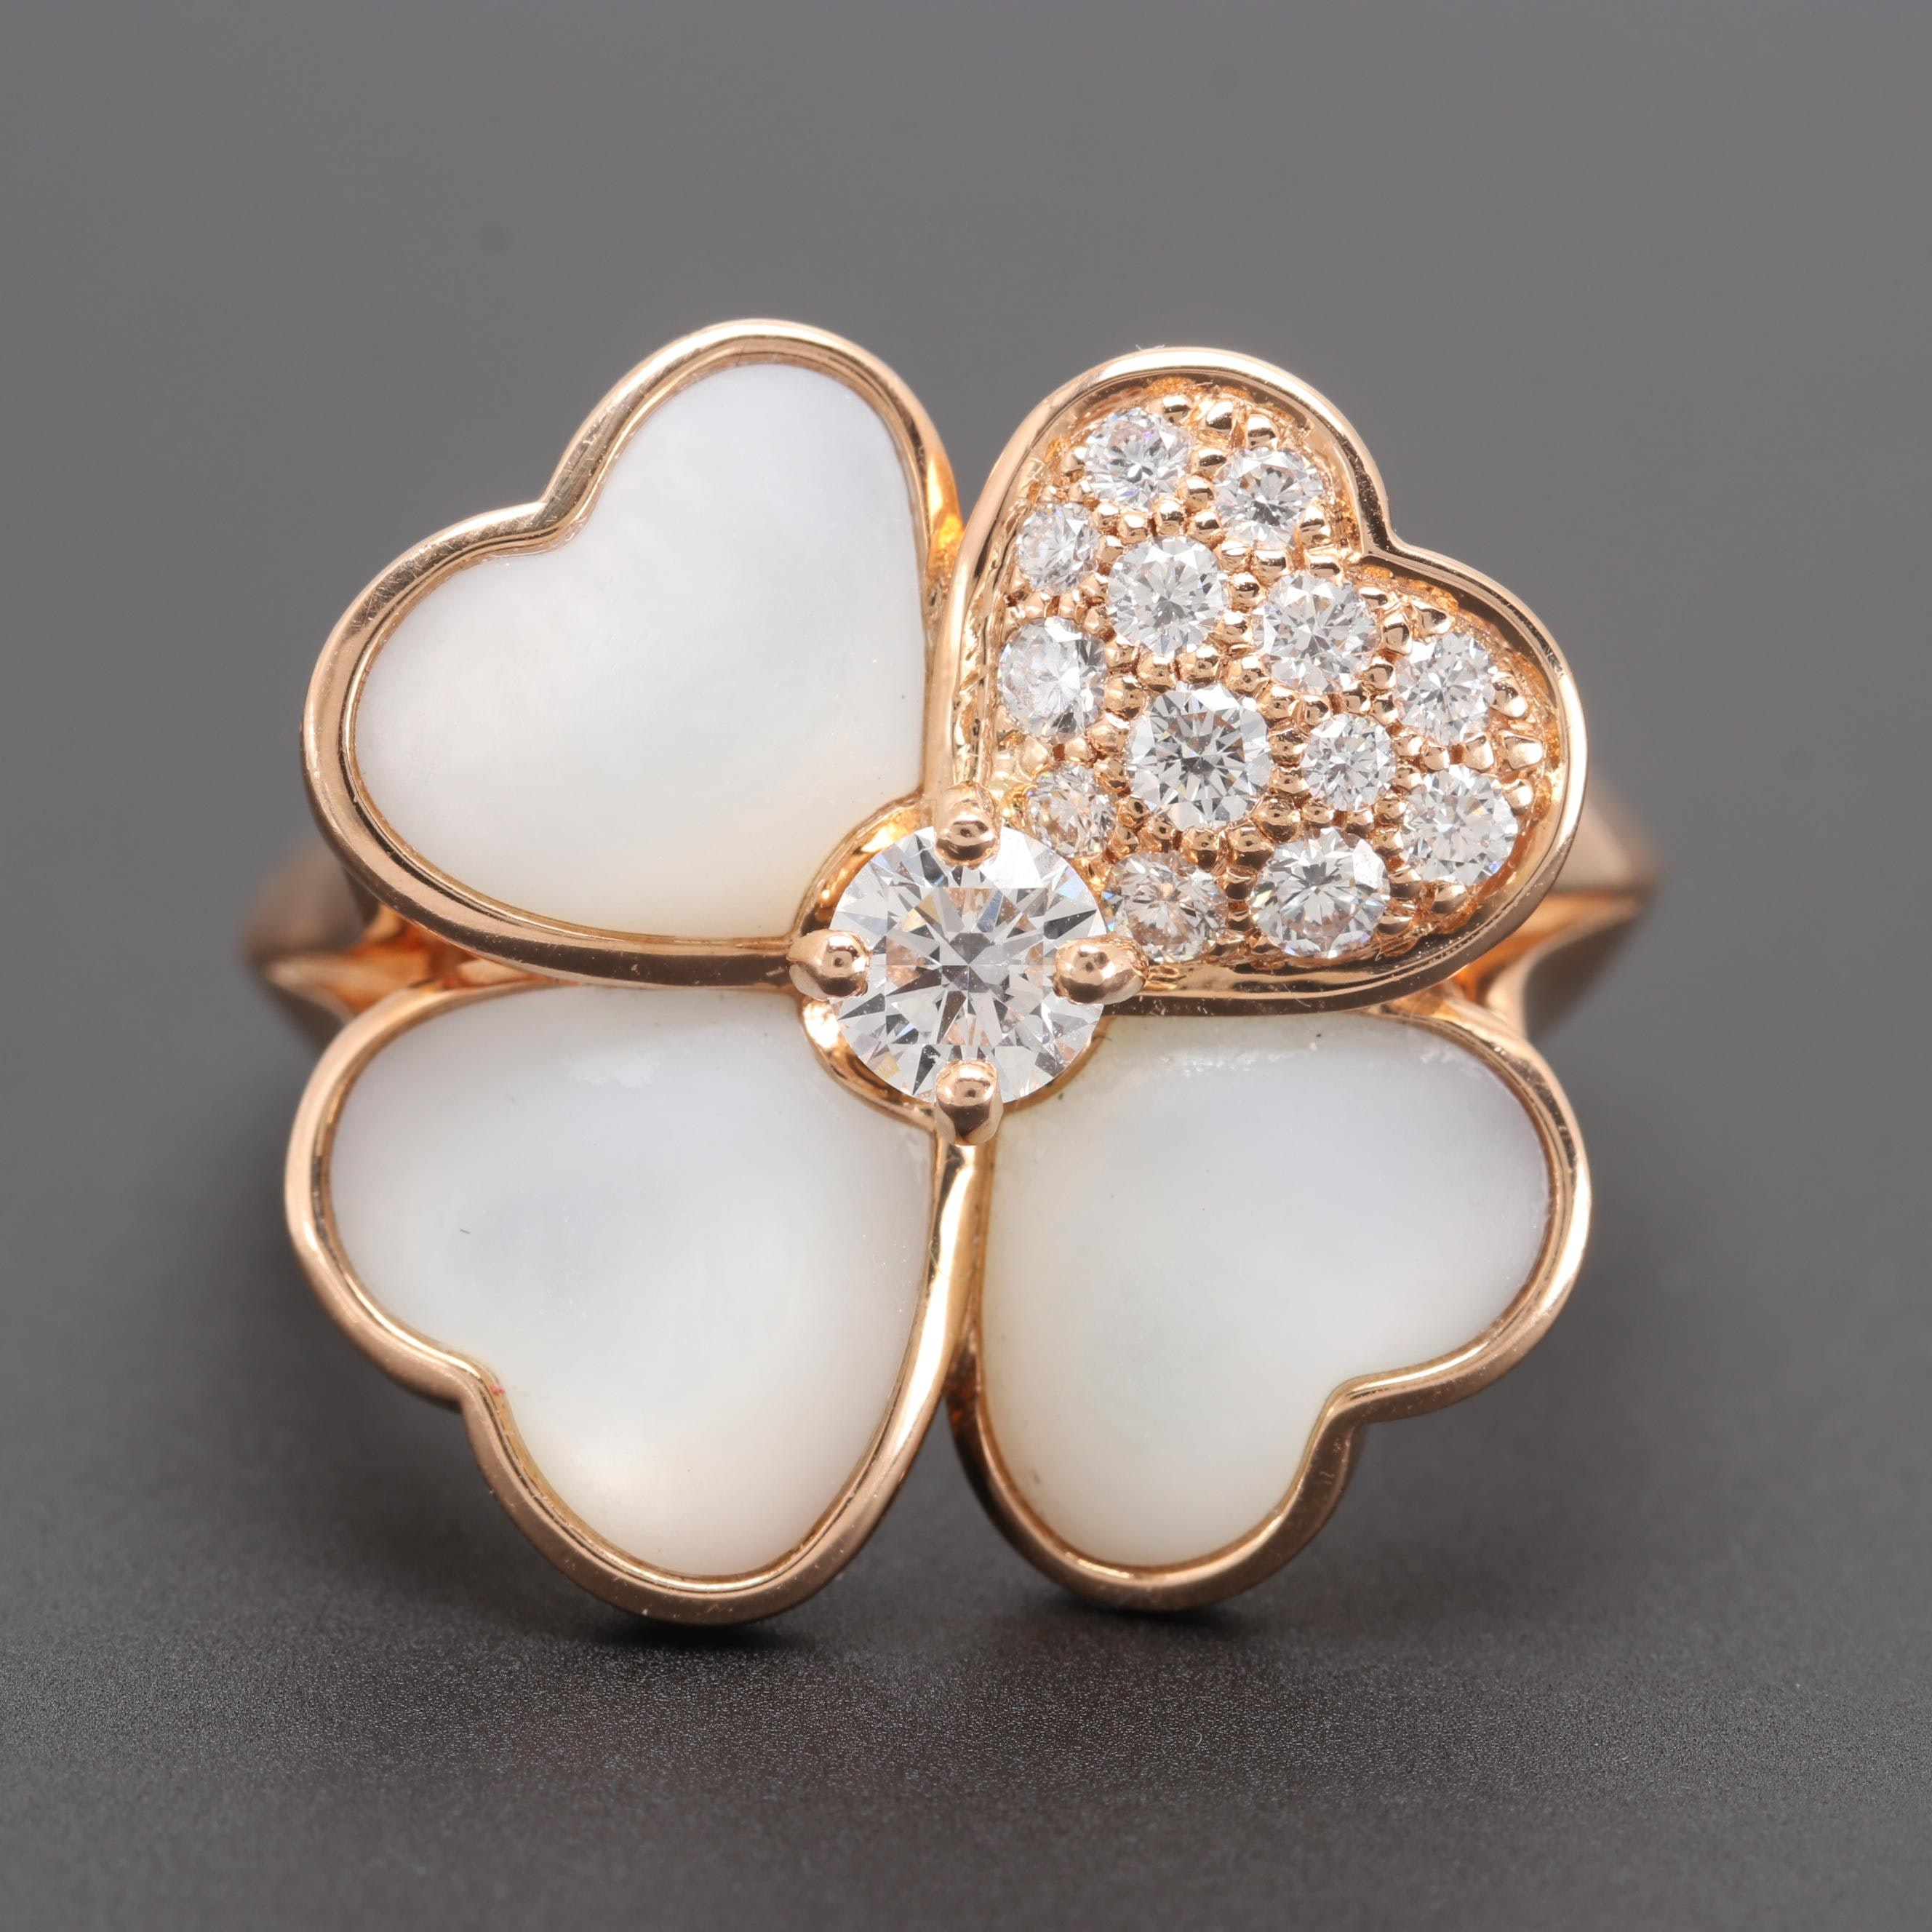 """Van Cleef & Arpels 18K Rose Gold Diamond and Mother of Pearl """"Cosmos"""" Ring"""